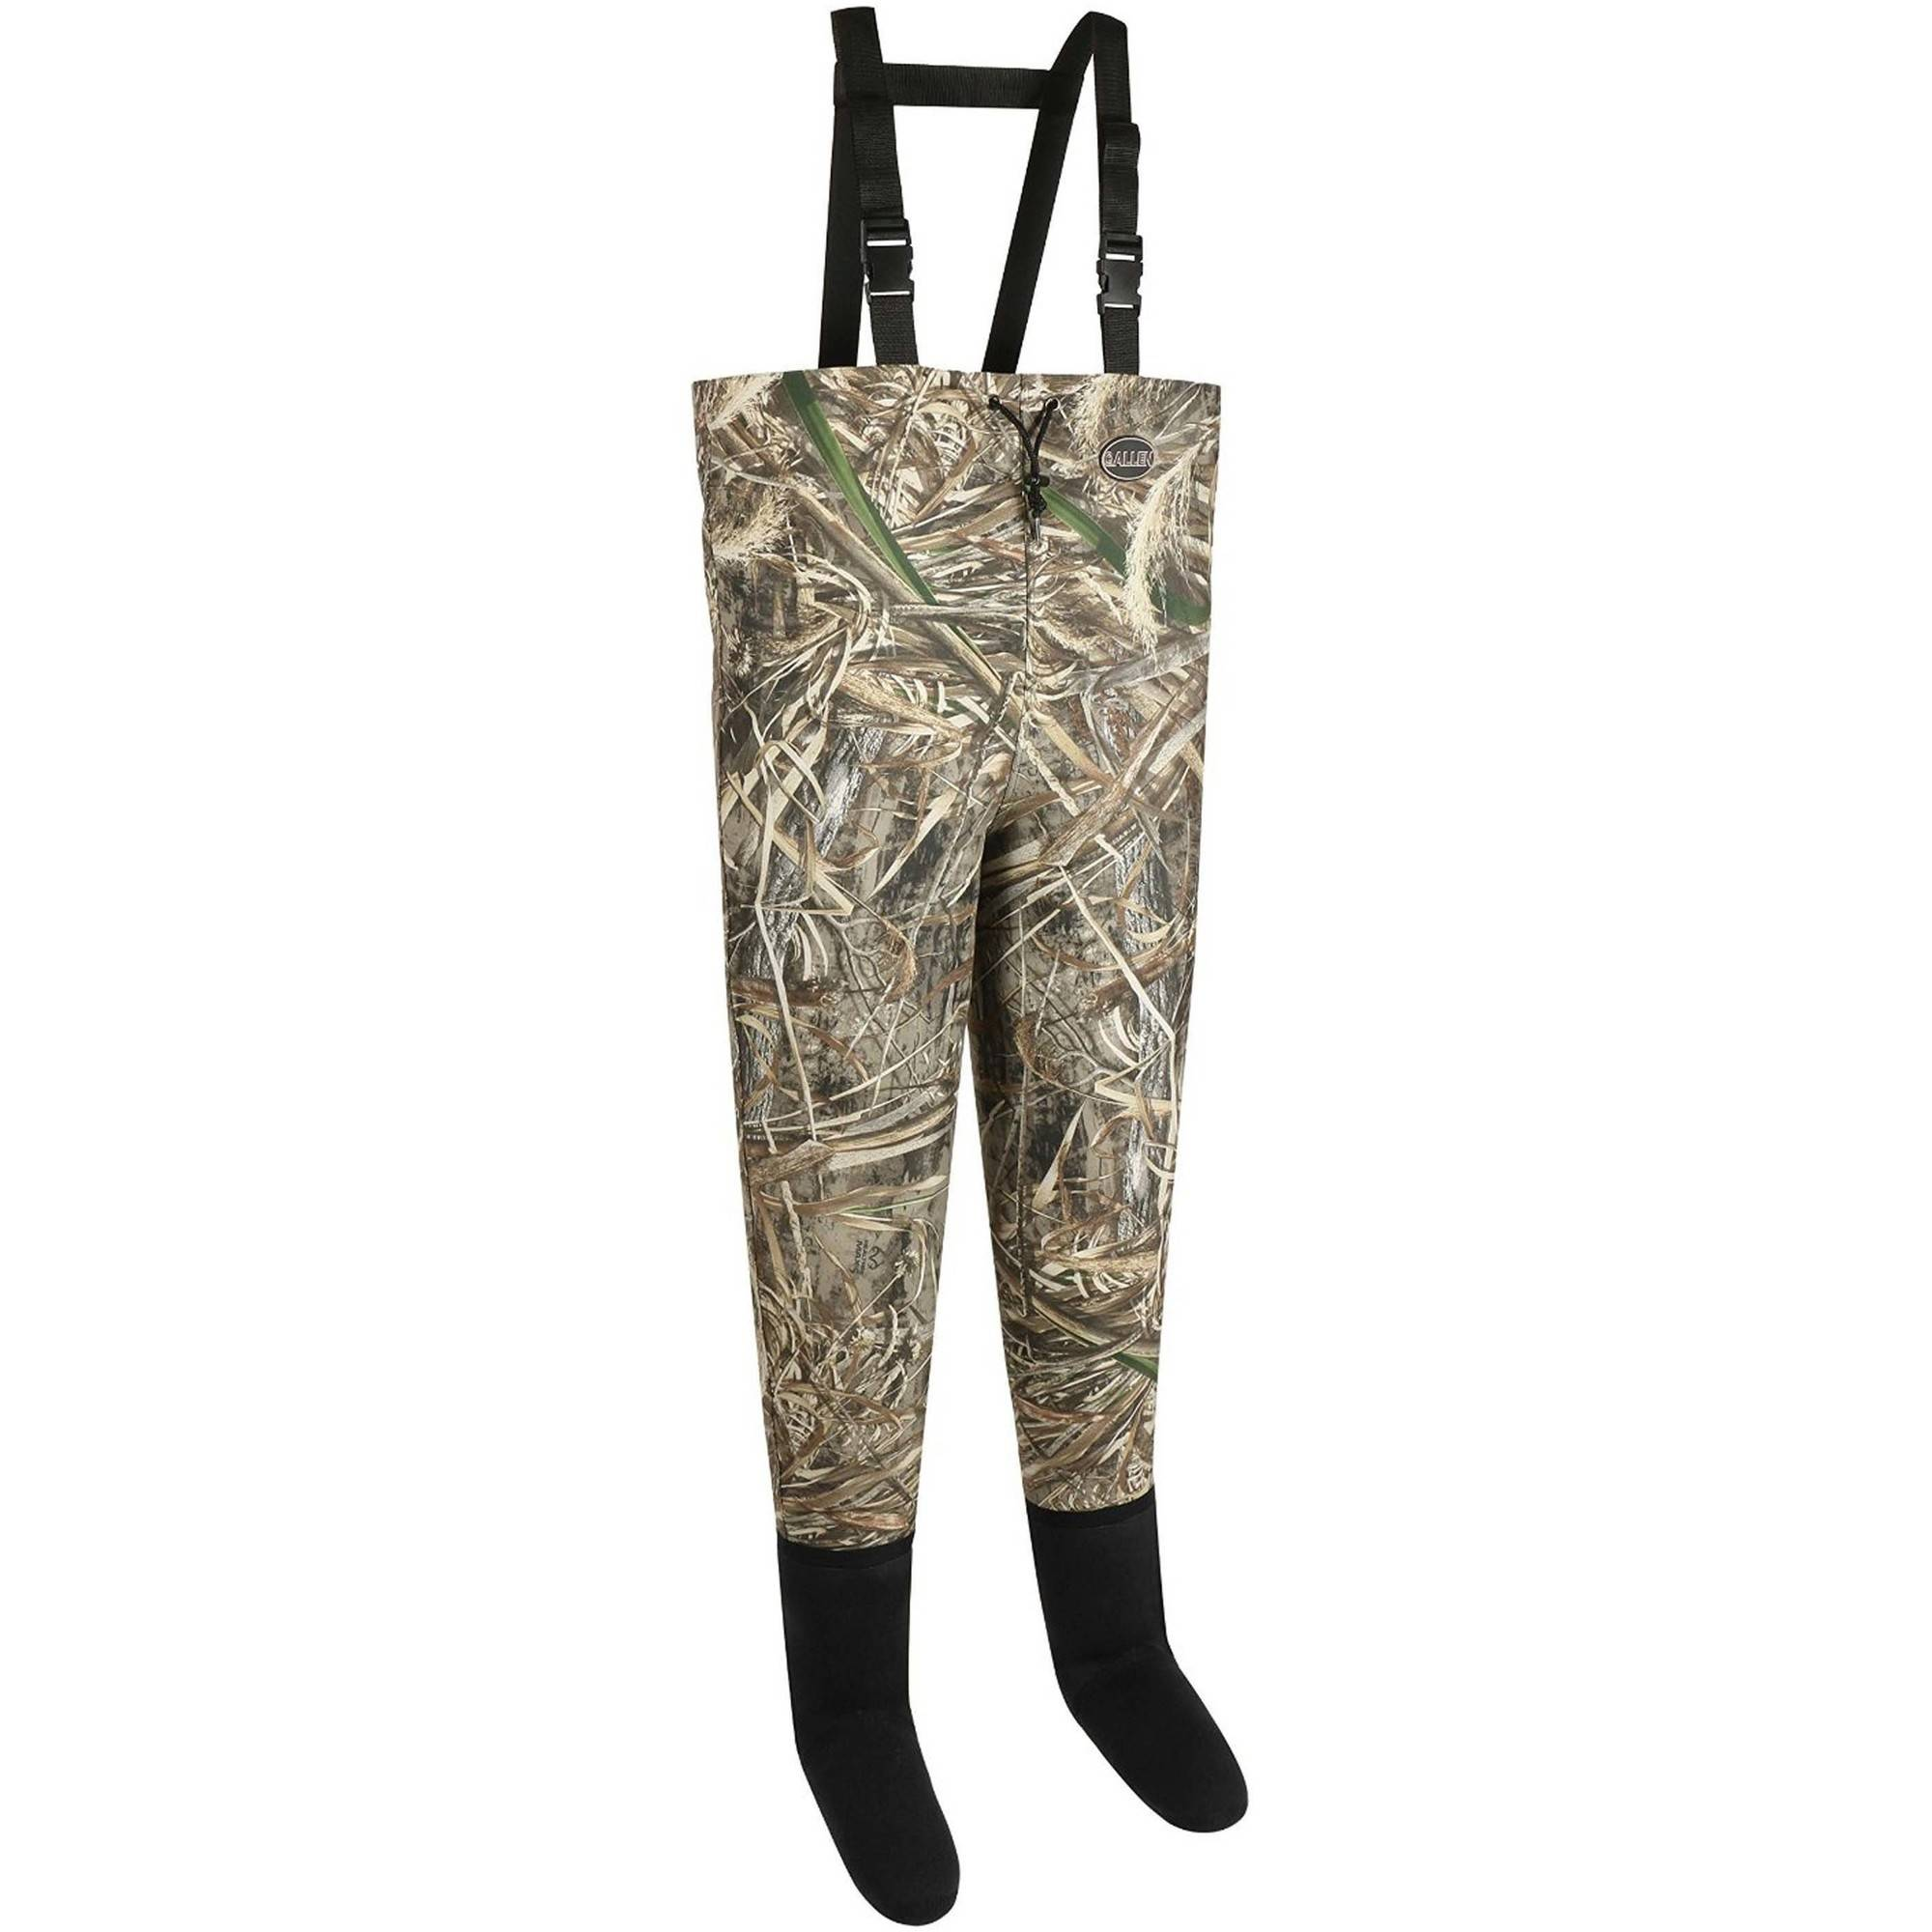 Allen Cases Vega 2-Ply Stocking Foot Camo Wader by Allen Cases